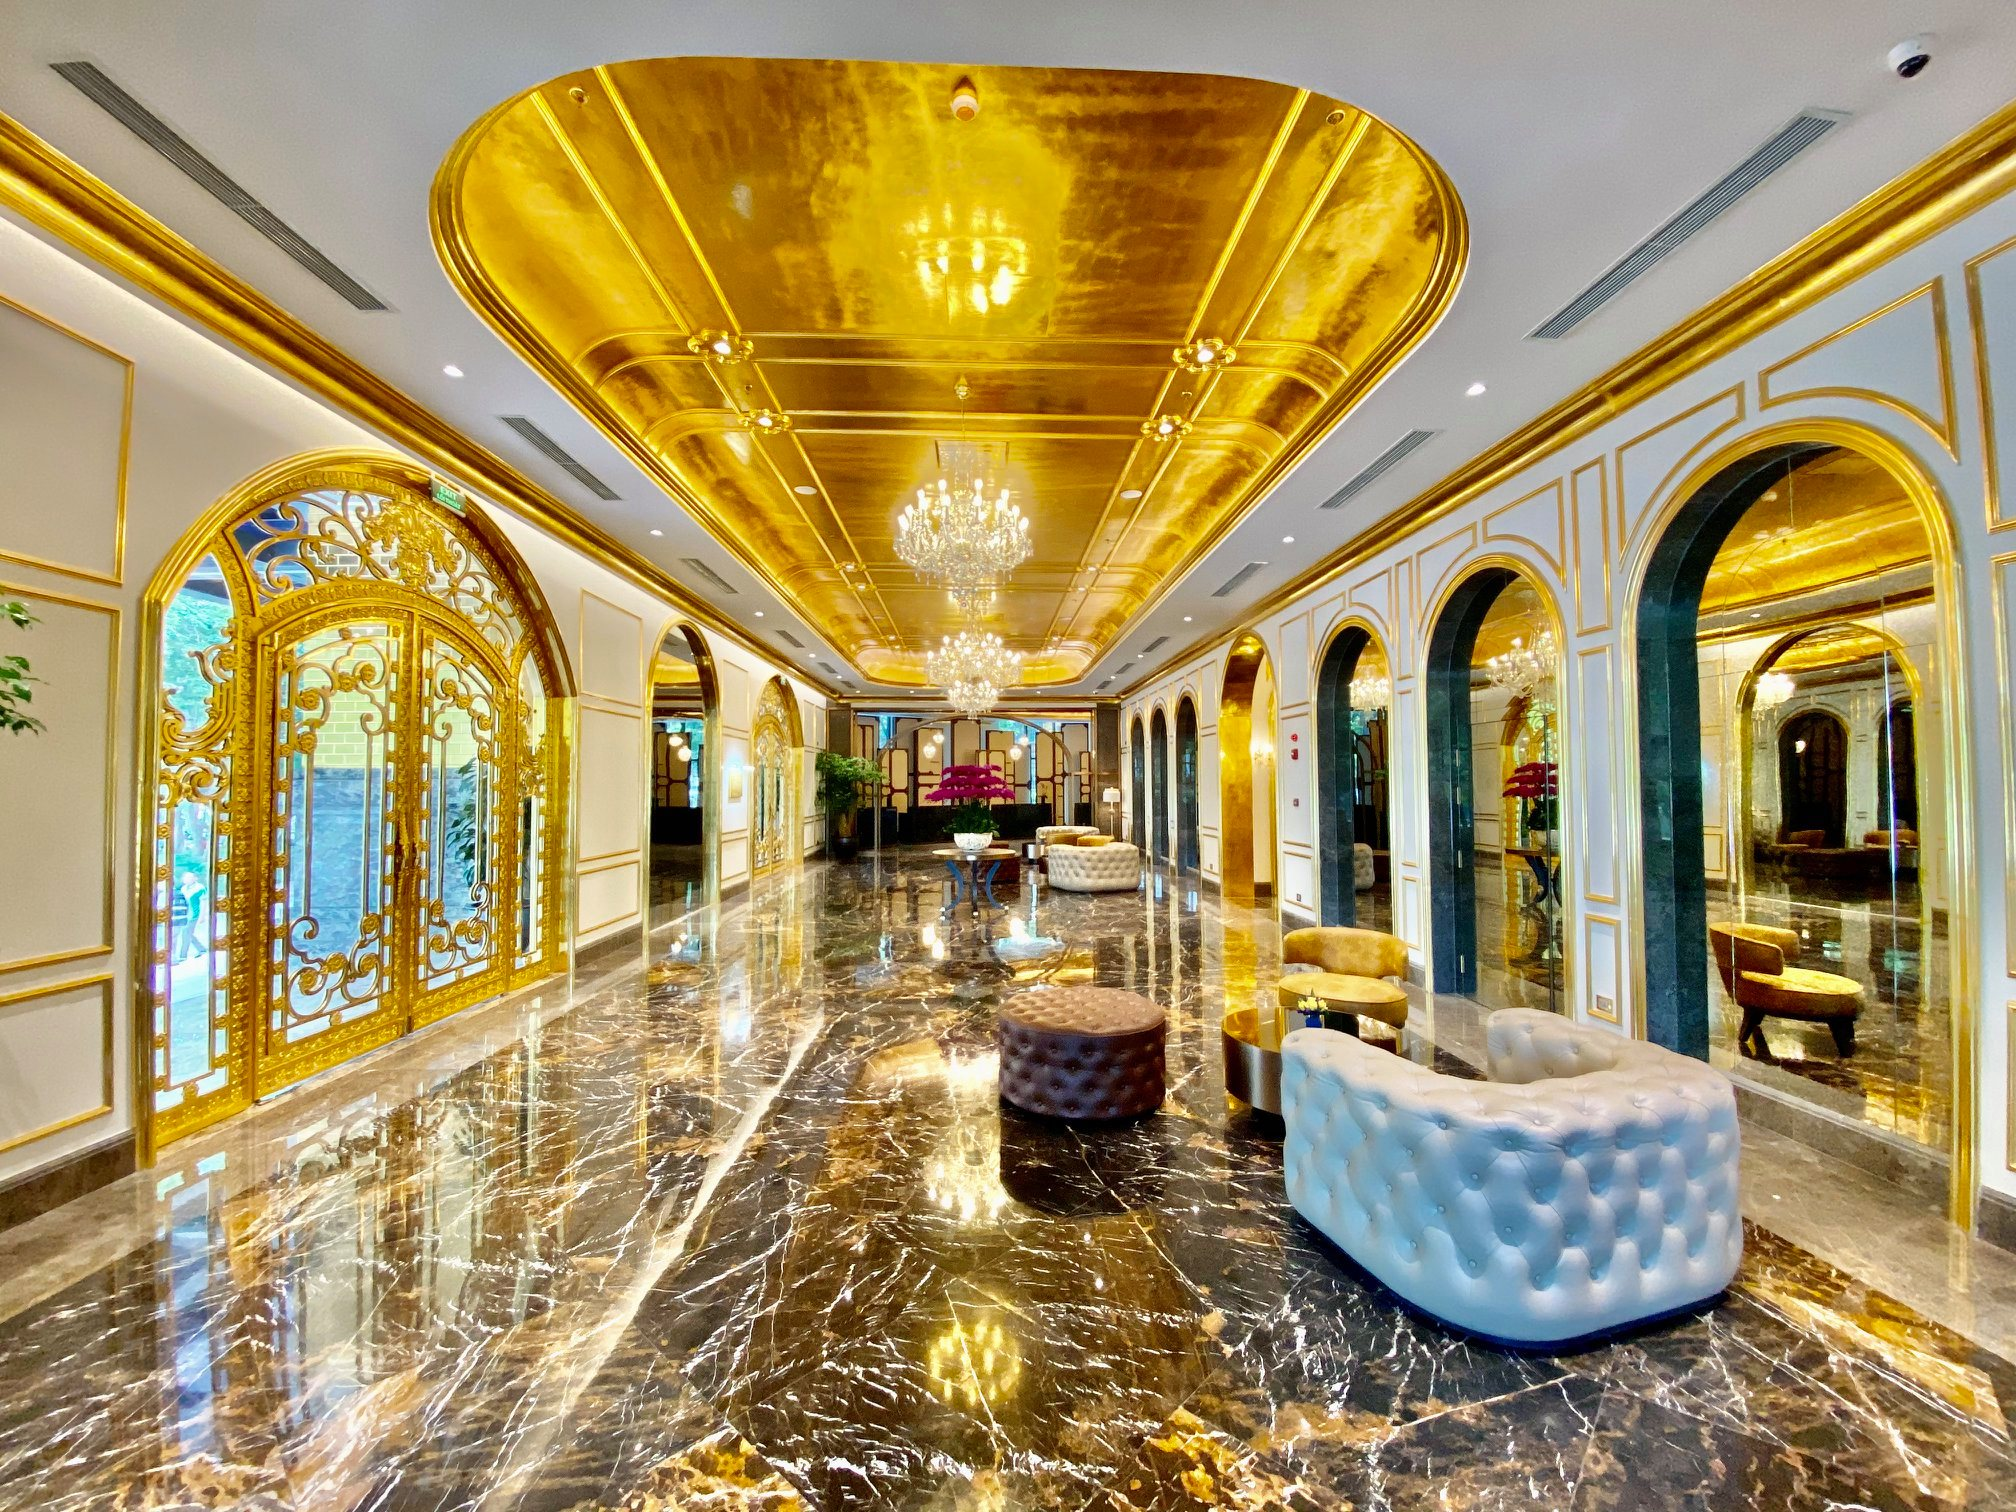 The decadent hotel is fitted out with fancy gold-themed interiors